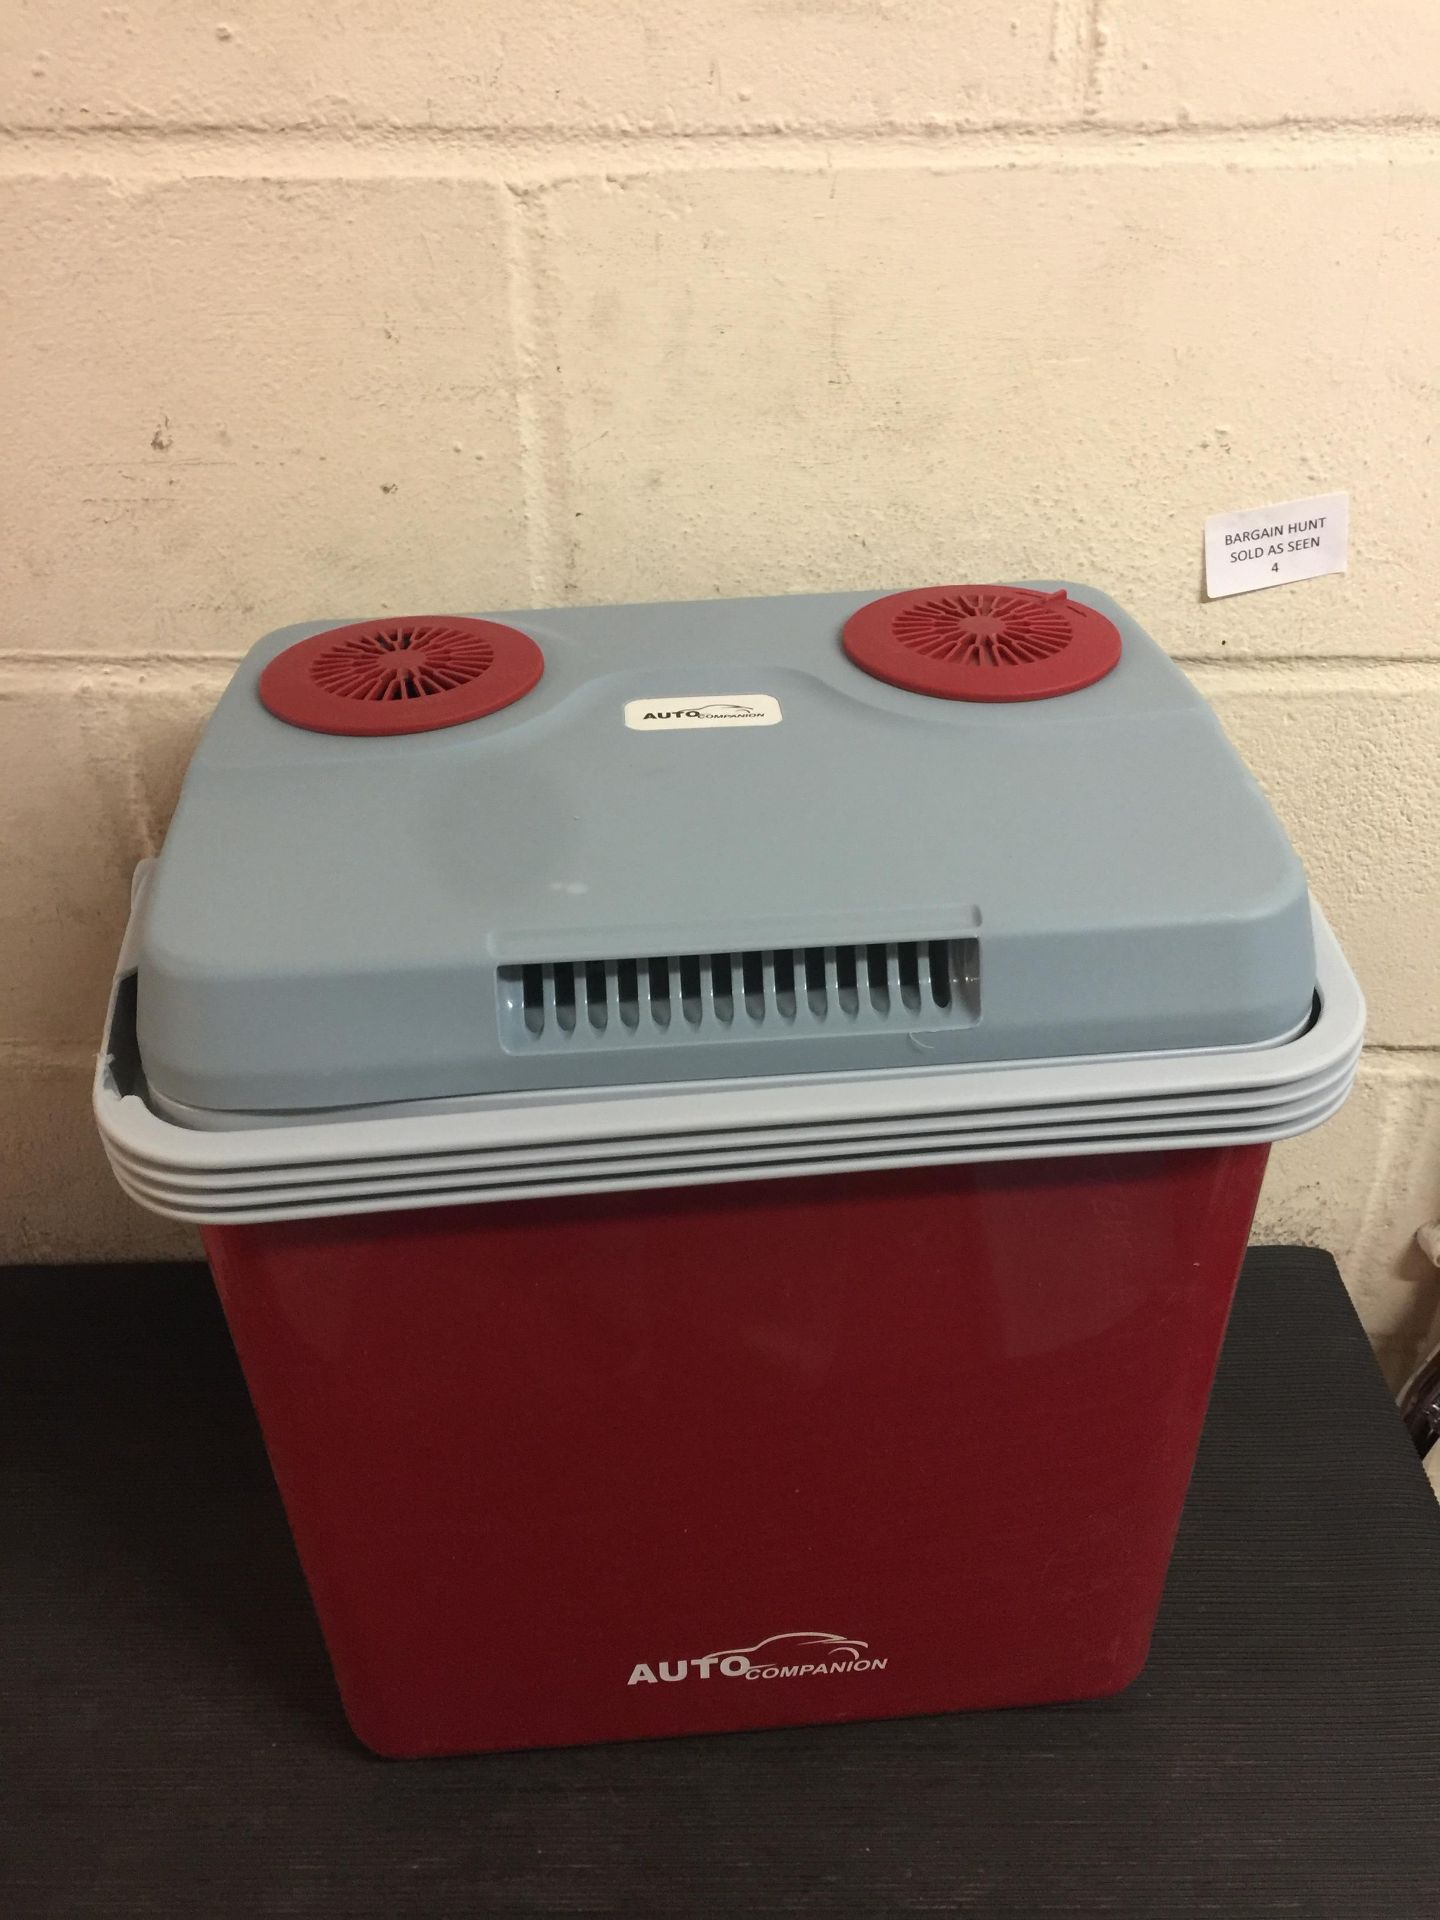 Lot 4 - Auto Companion Coolbox Hot Cold Portable Electric Cool Box (break inside, see image) RRP £64.99